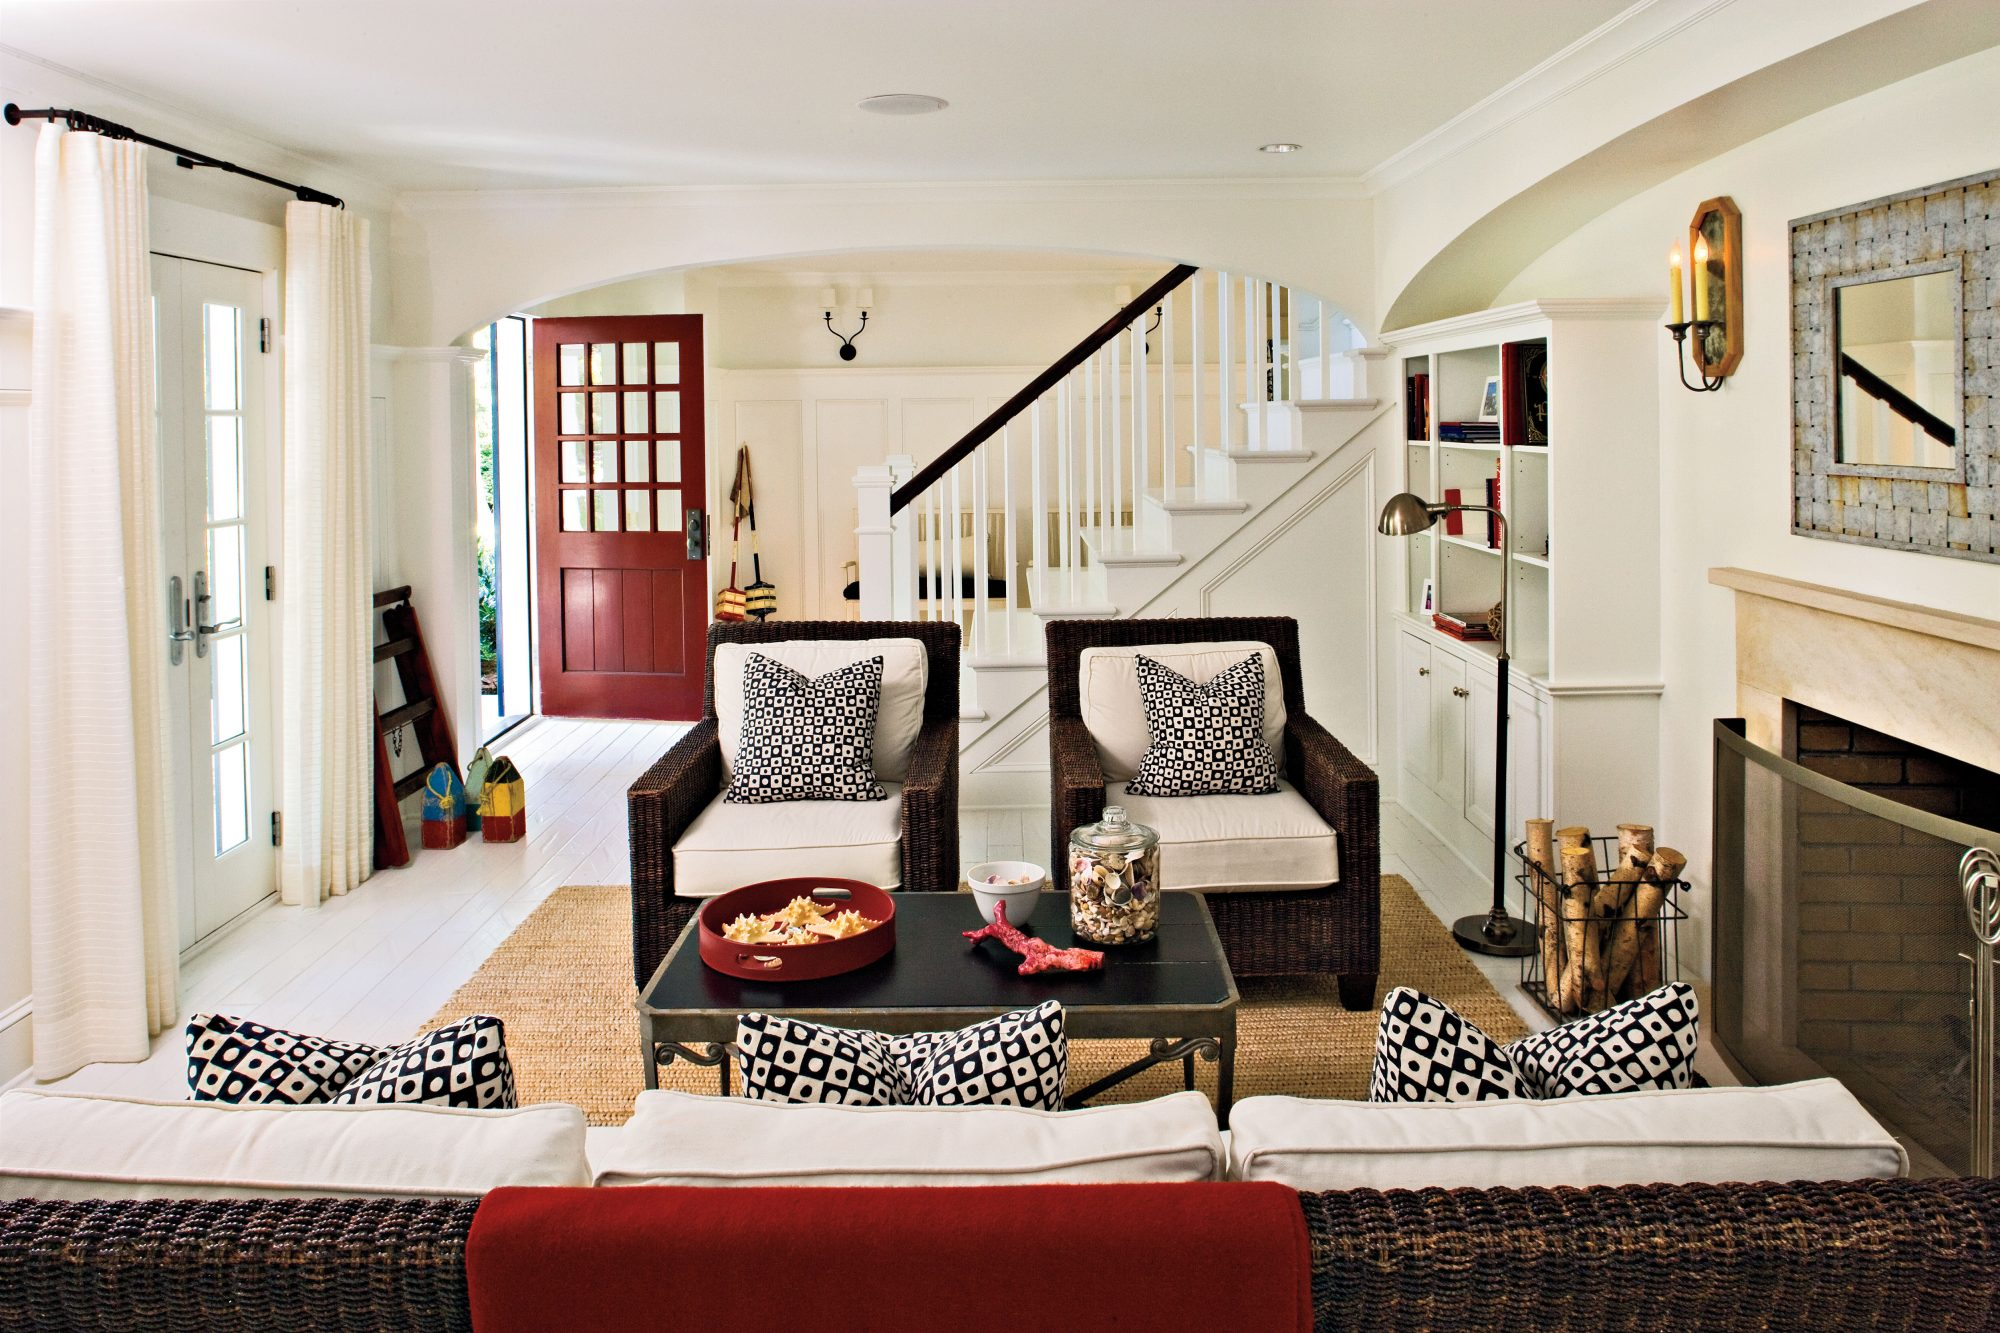 Living Room Makeovers On A Budget Before And After 18 Budgetfriendly Makeovers  Southern Living